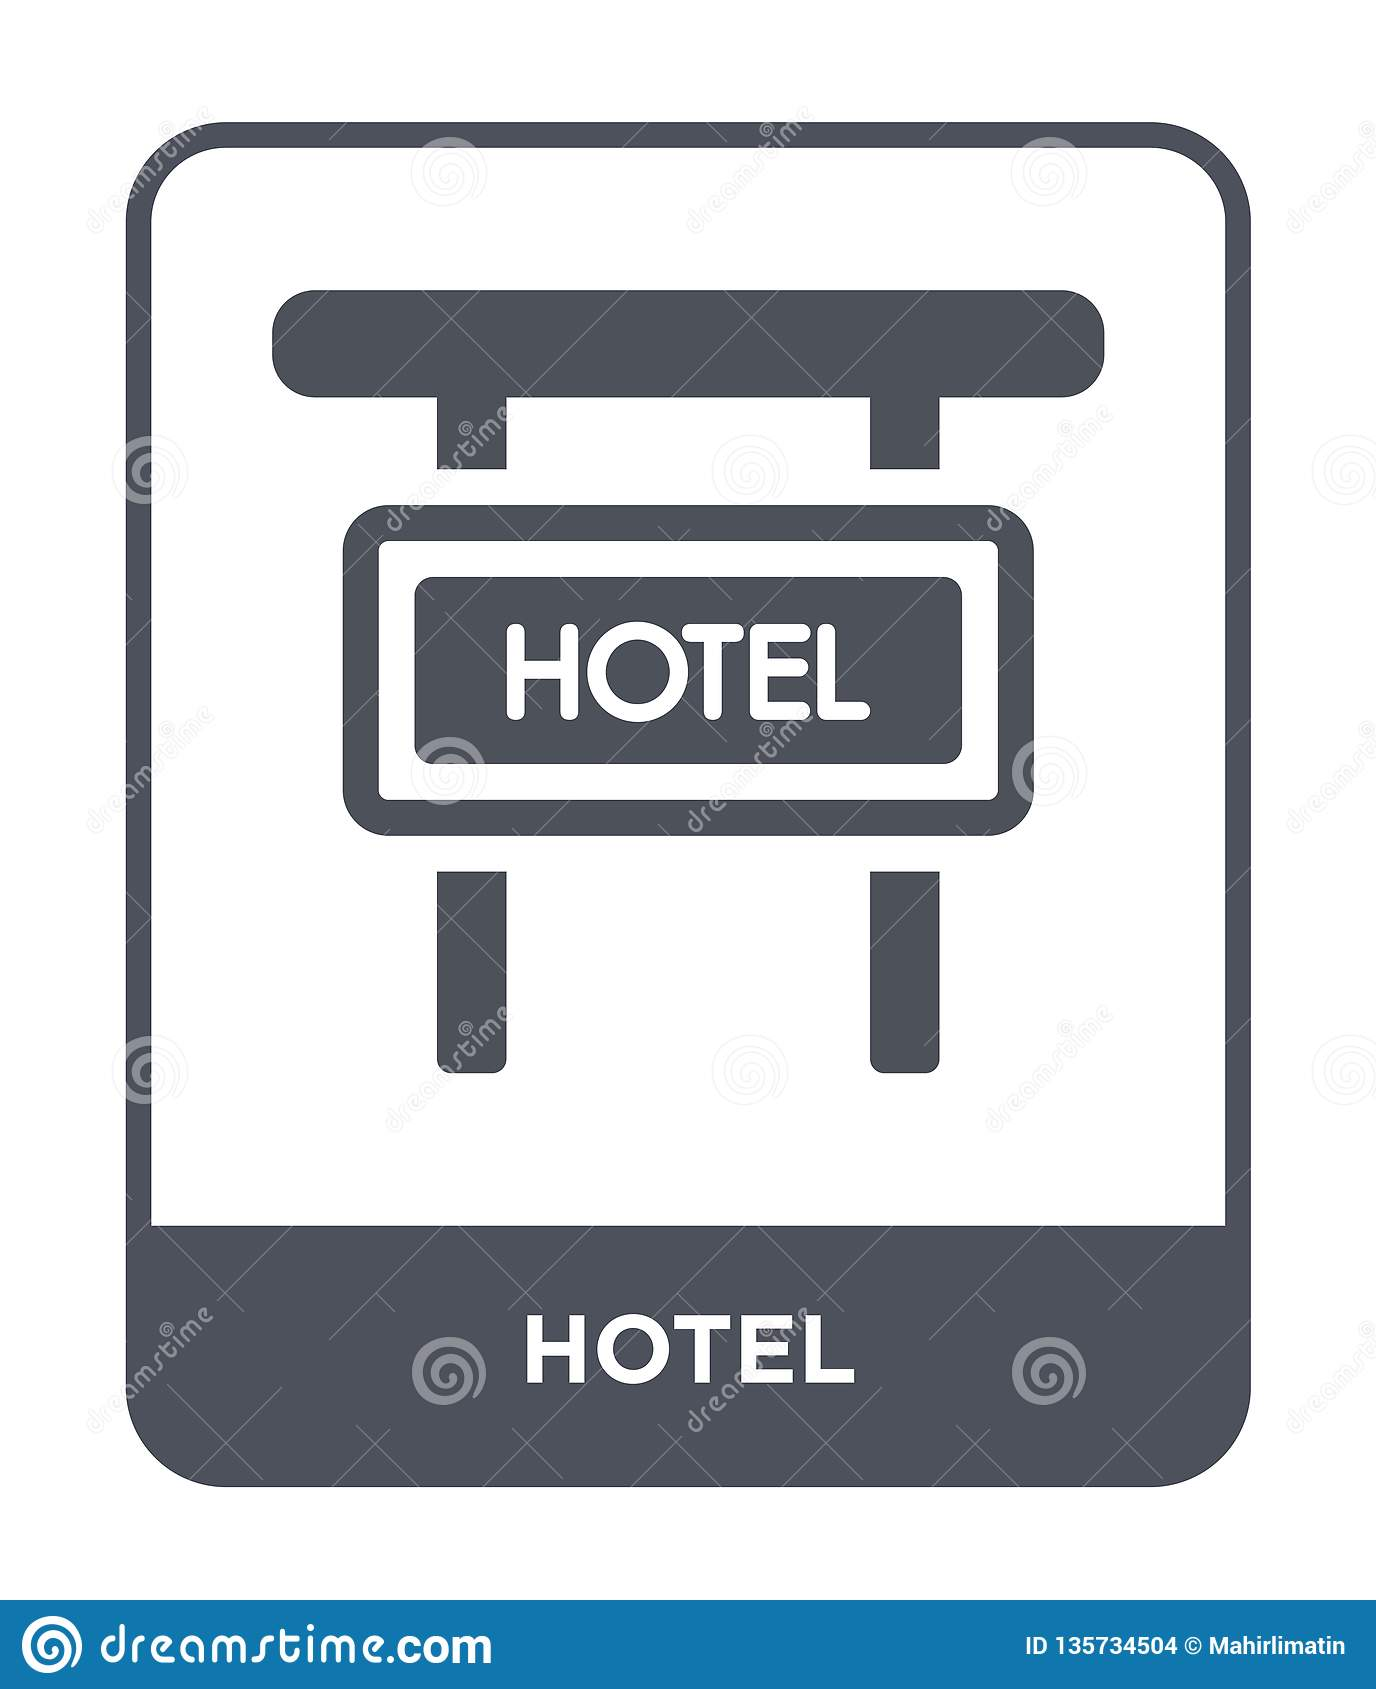 hotel icon in trendy design style. hotel icon isolated on white background. hotel vector icon simple and modern flat symbol for